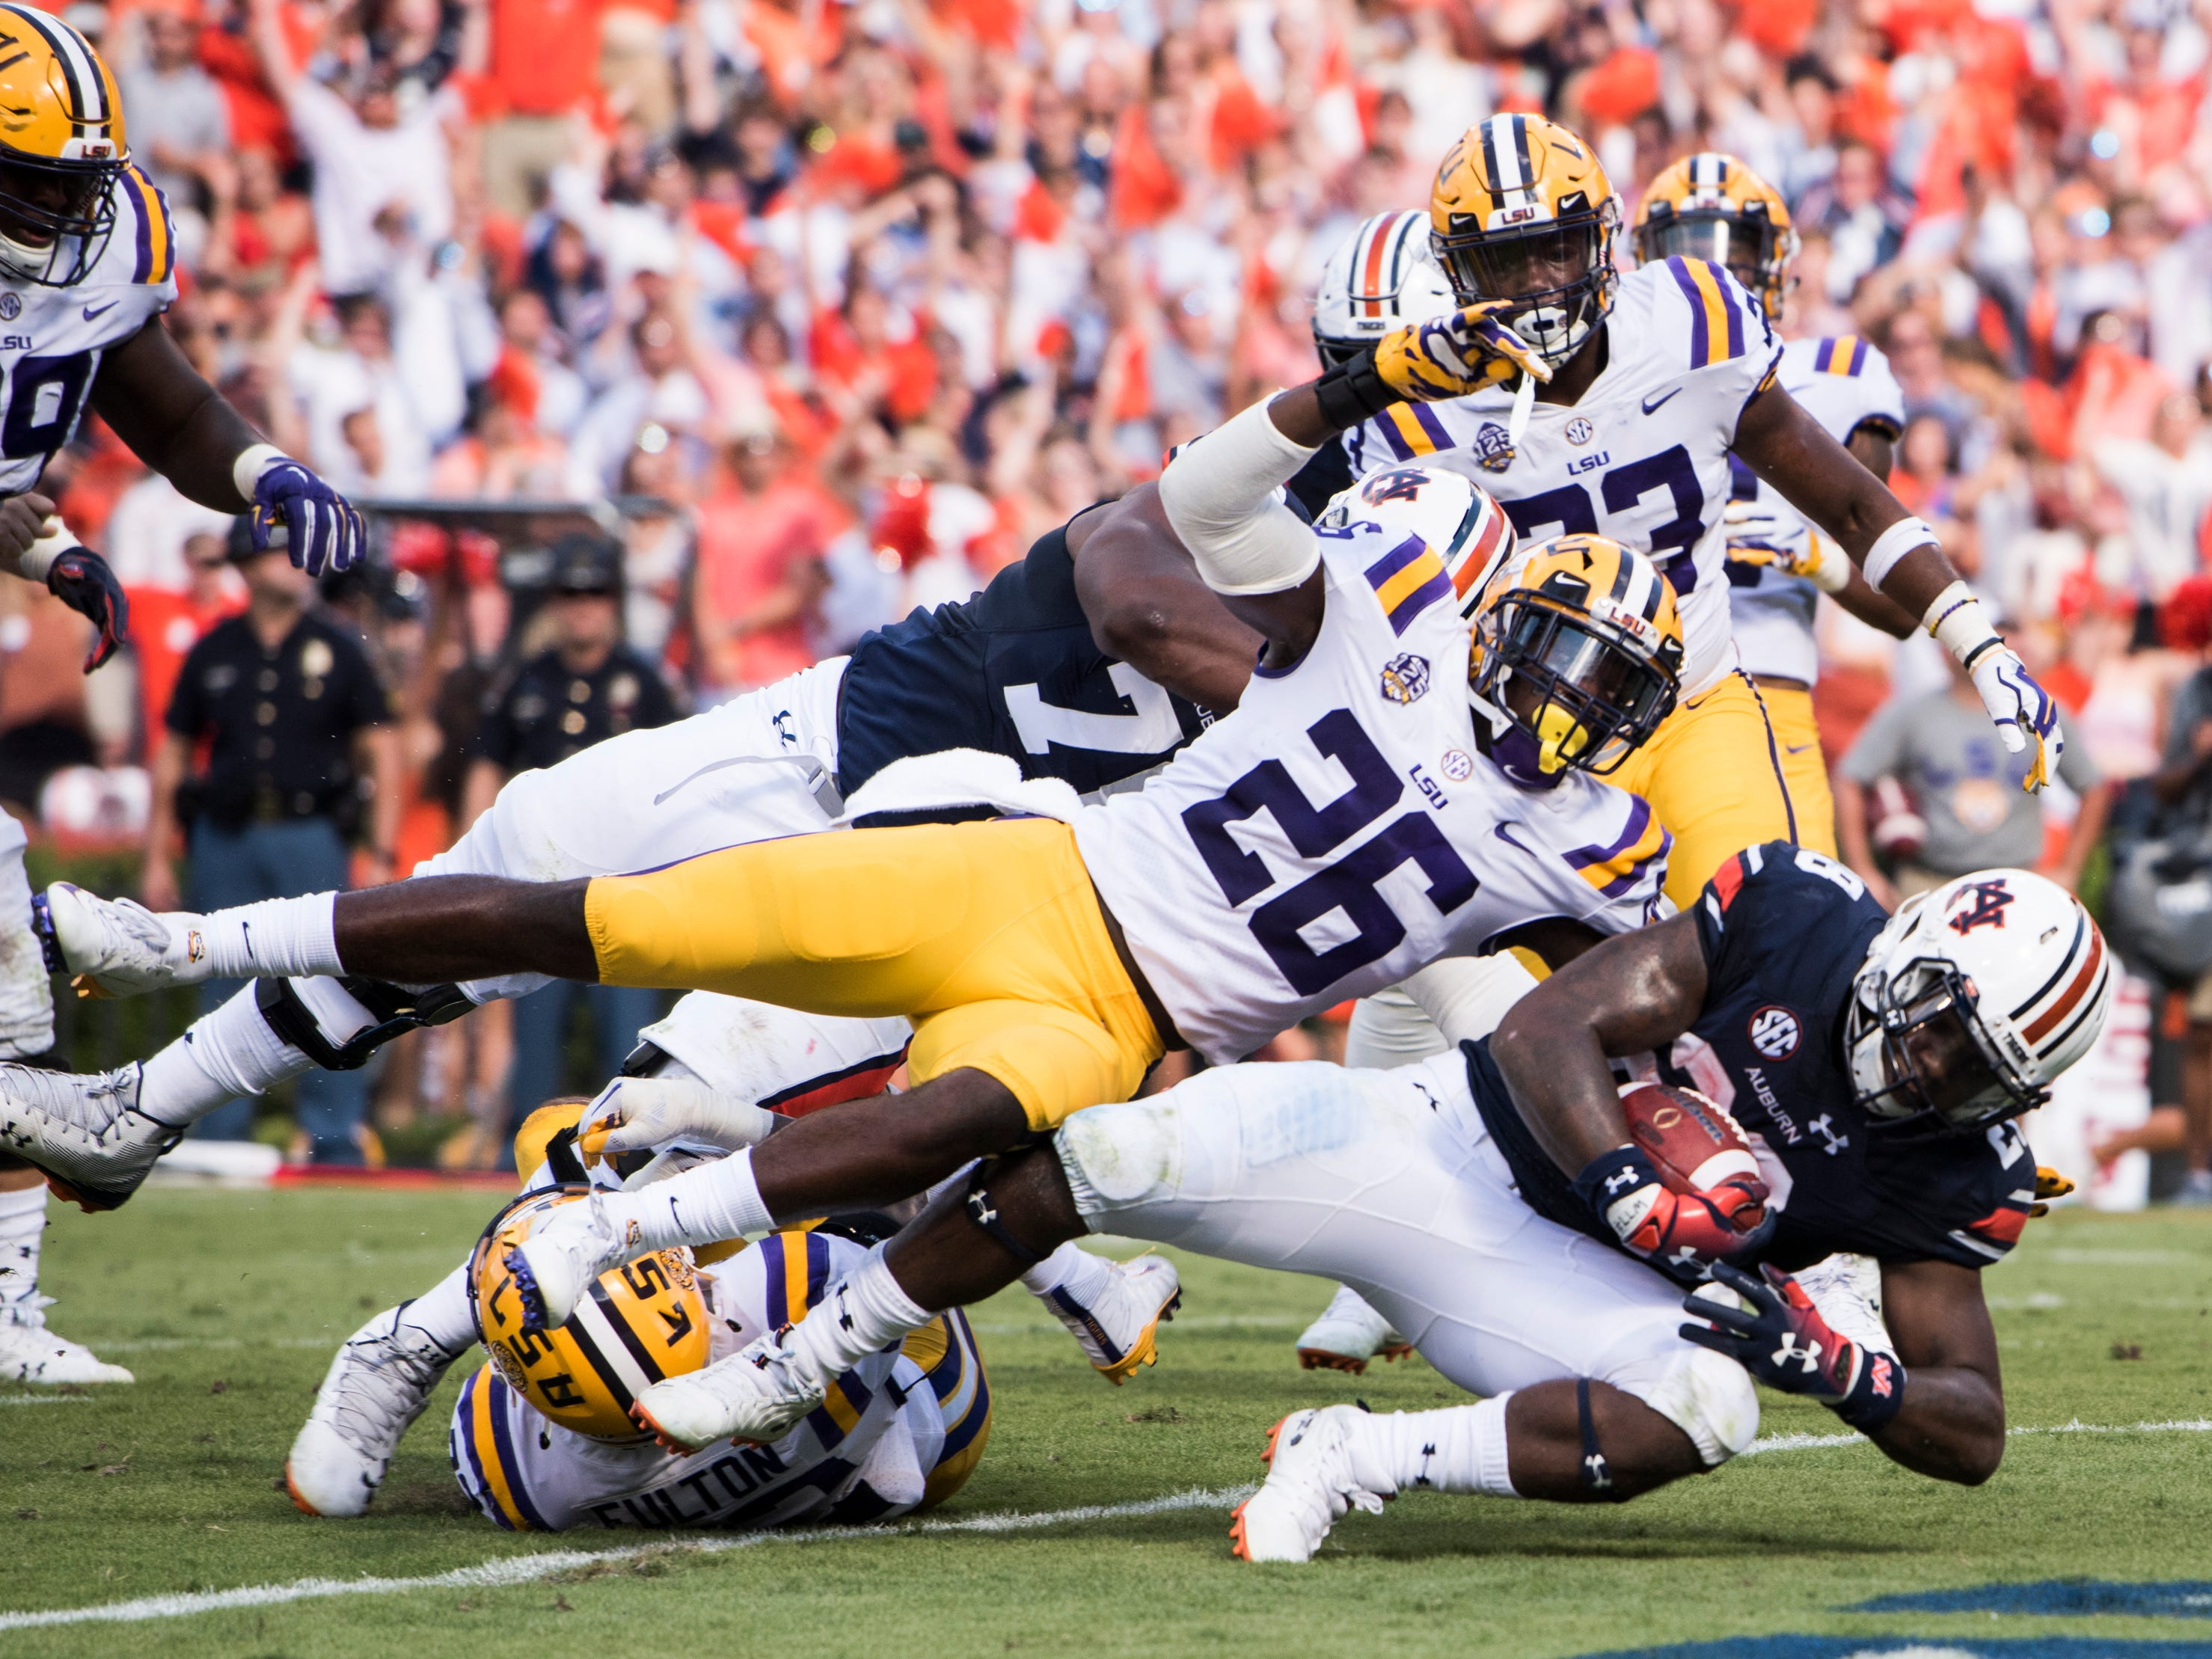 Auburn's JaTarvious Whitlow (28) falls into the end zone for a touchdown against LSU at Jordan-Hare Stadium in Auburn, Ala., on Saturday, Sept. 15, 2018. Auburn leads LSU 14-10 at halftime.